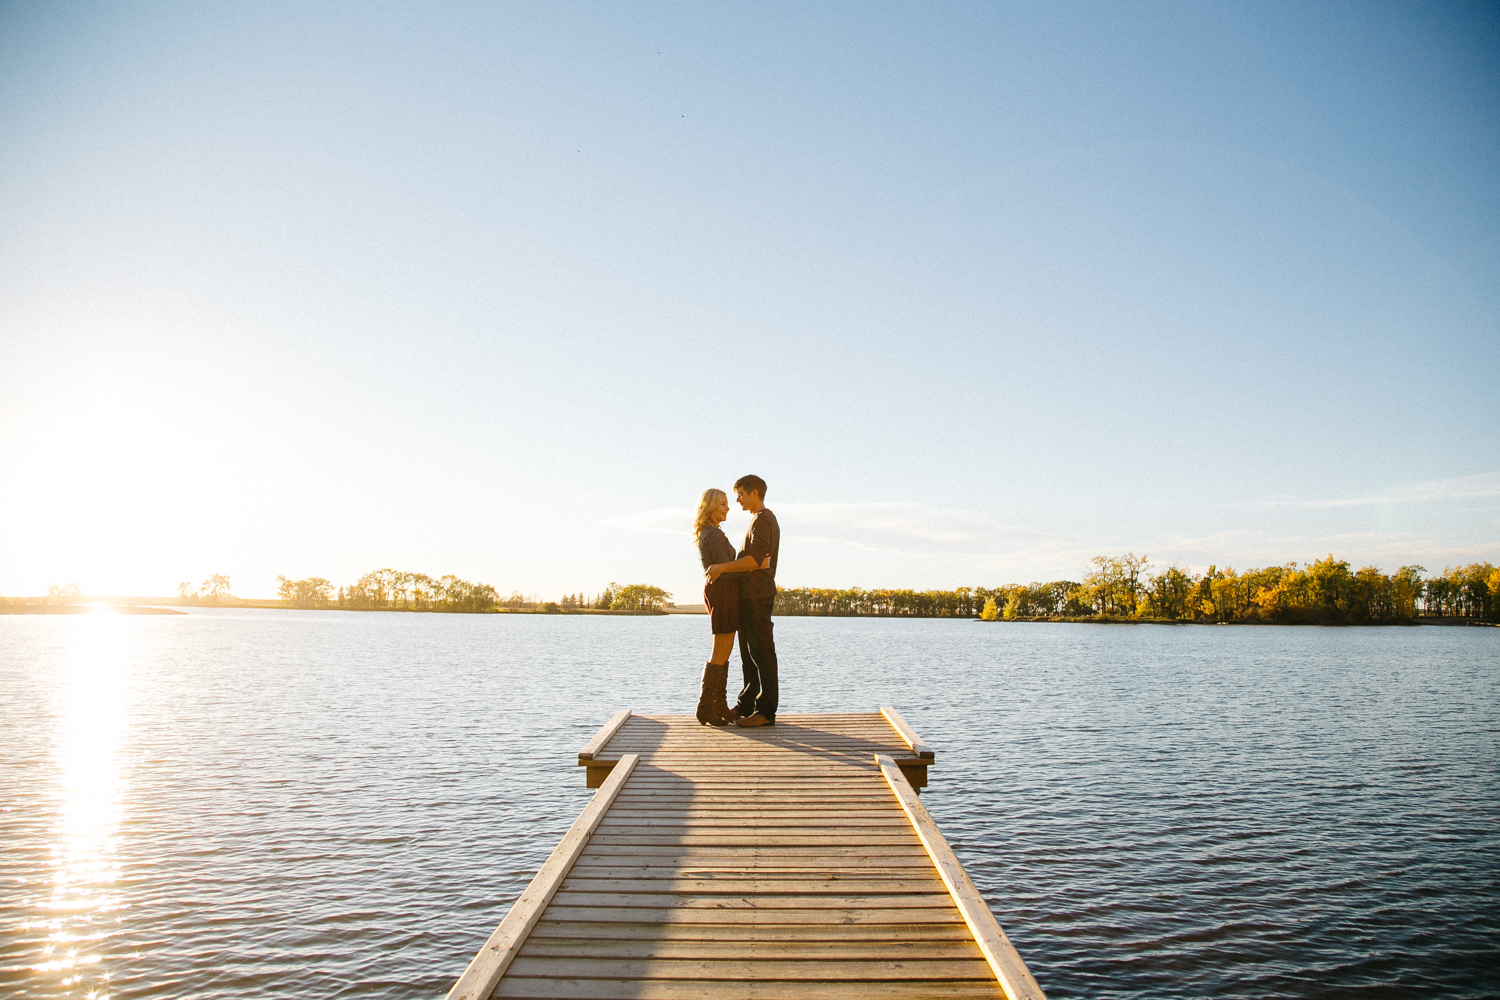 lethbridge-engagement-photography-love-and-be-loved-photography-steven-marlene-park-lake-engaged-picture-image-photo-21.jpg